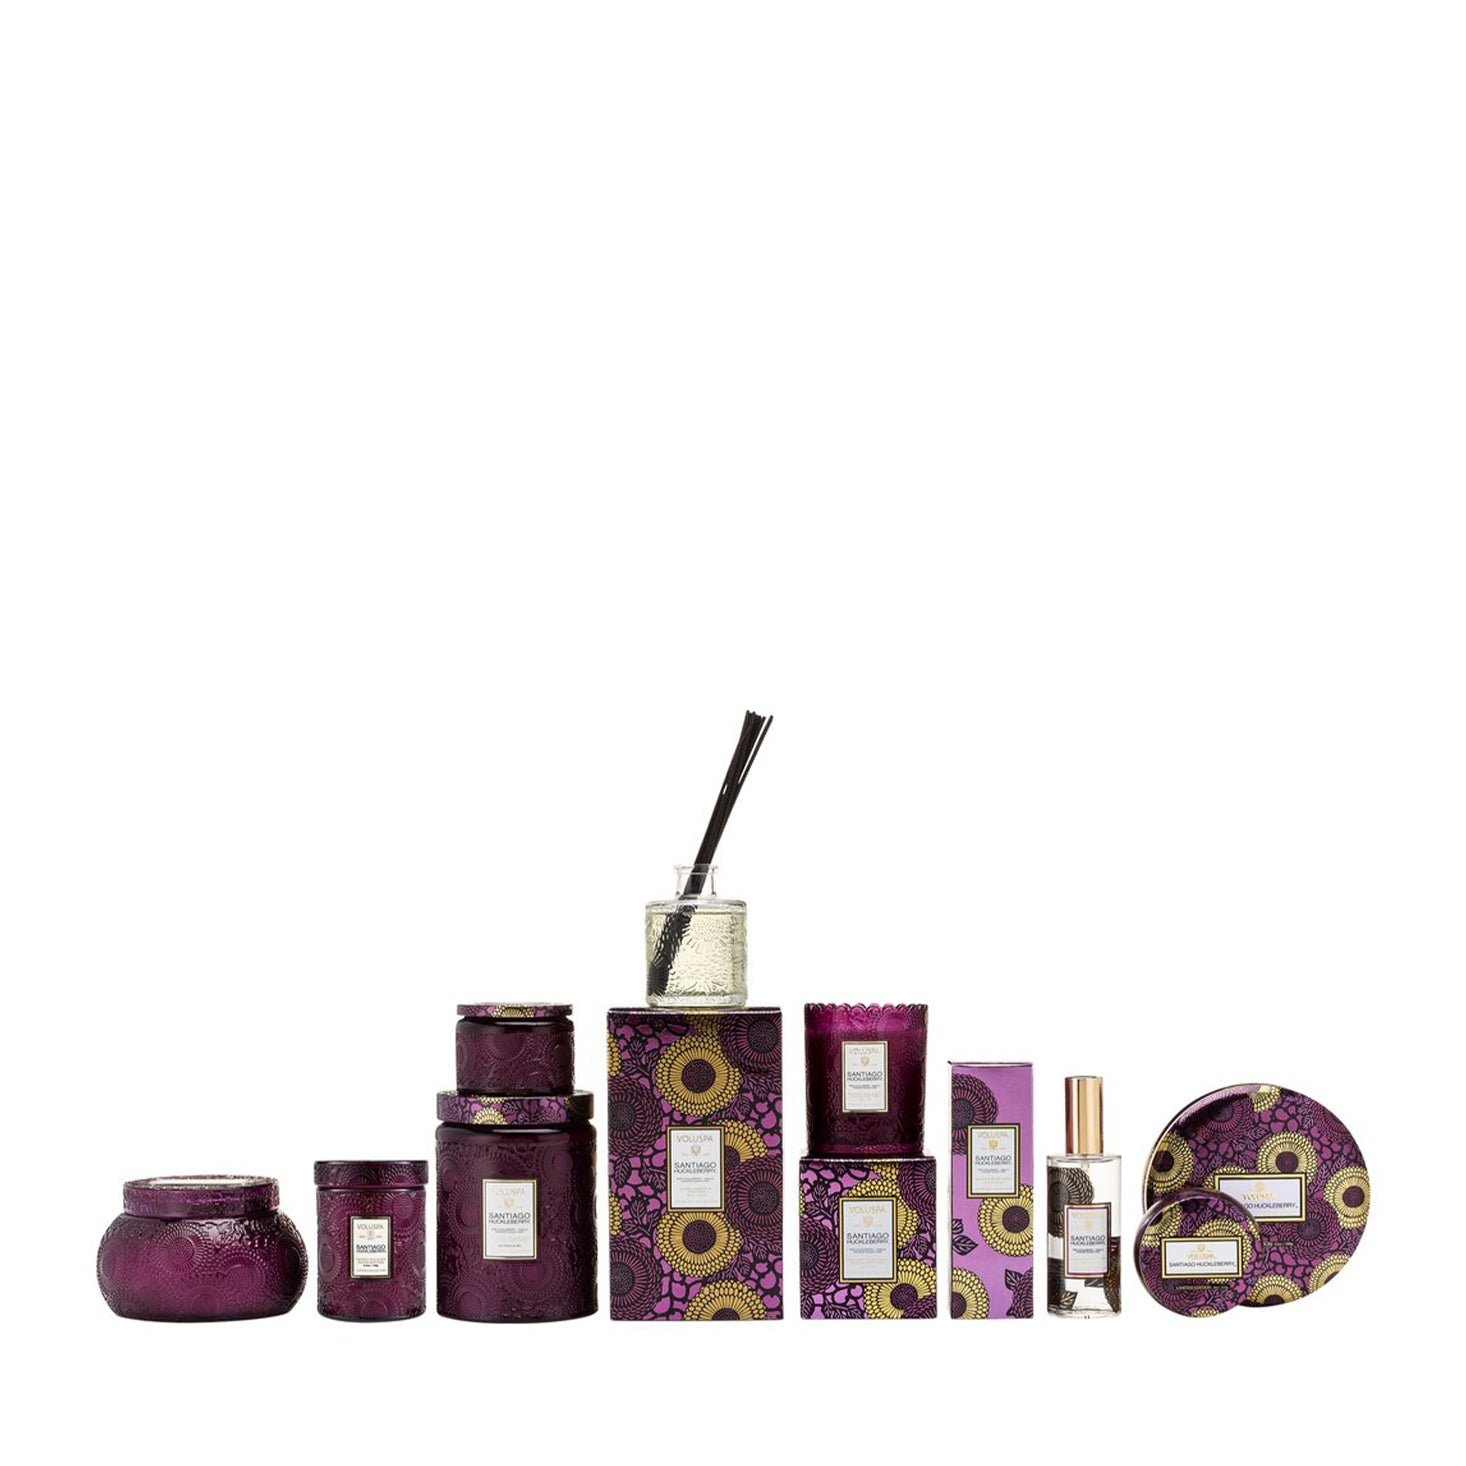 VOLUSPA Santiago Huckleberry Petite Candle